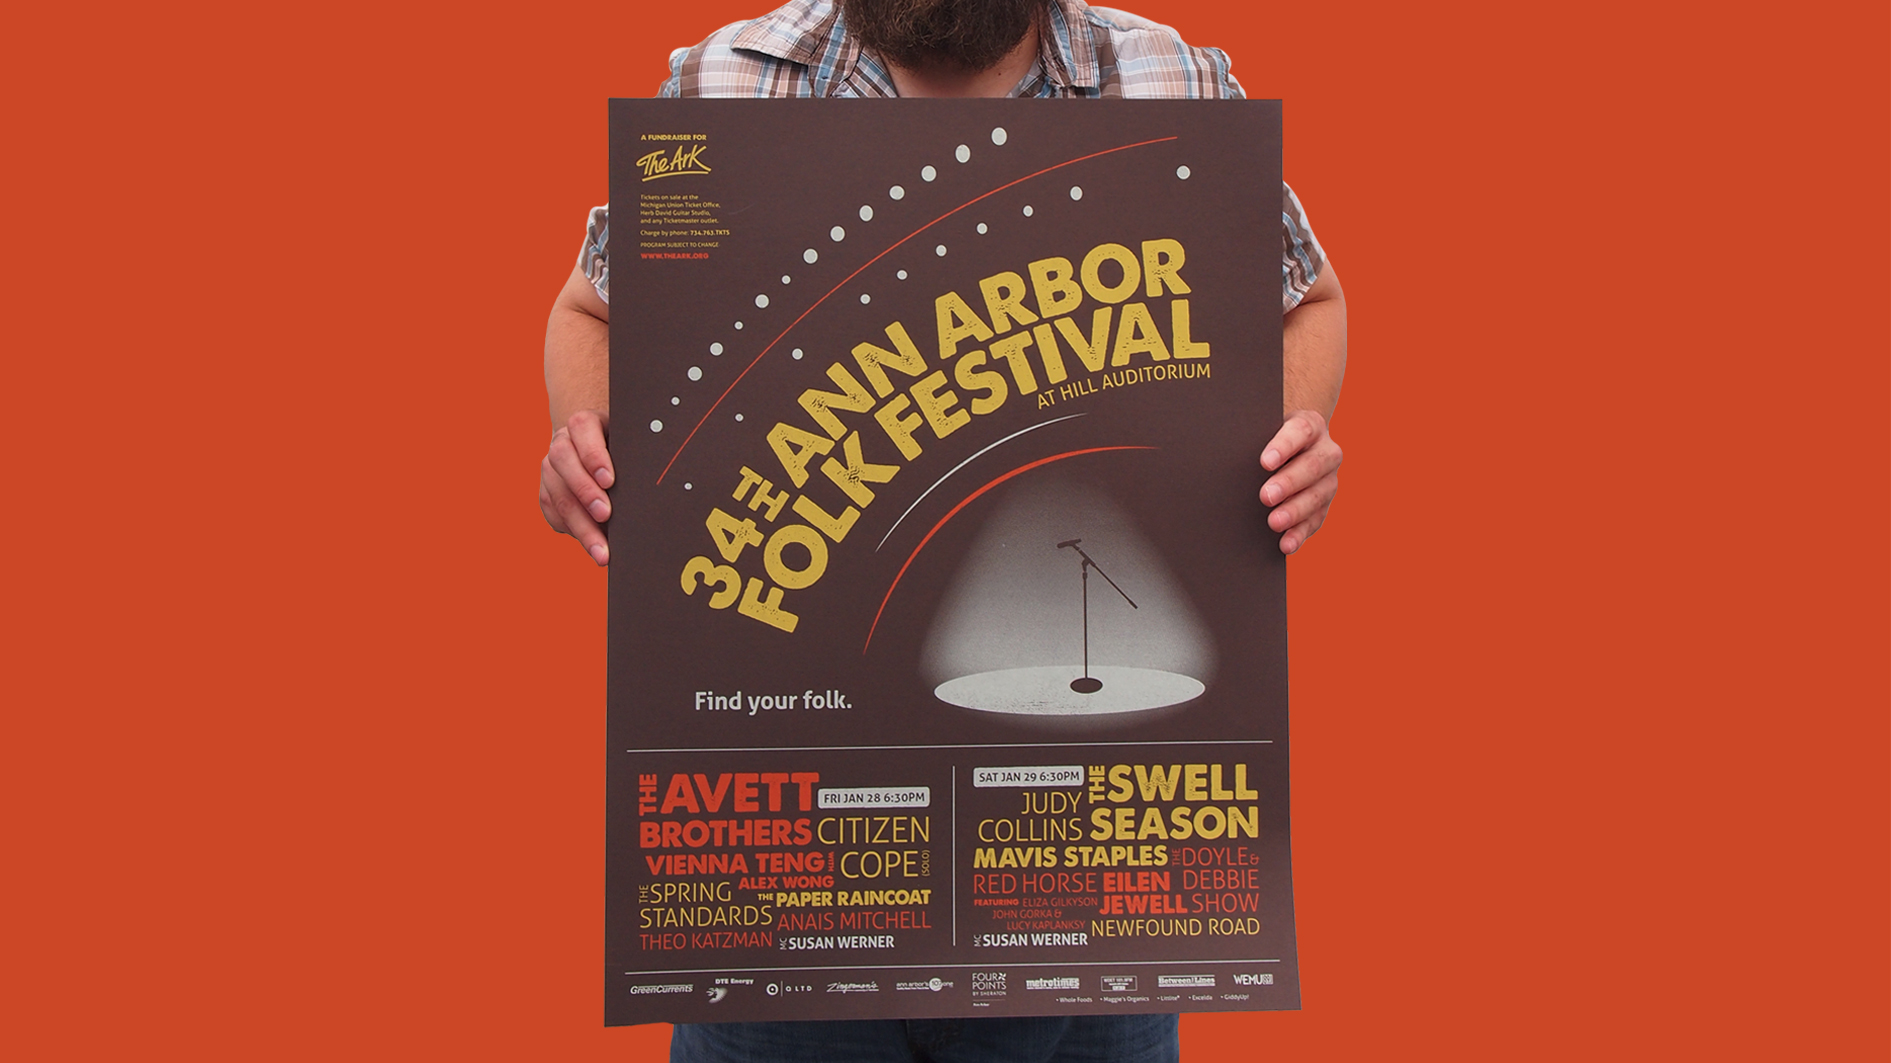 34th Ann Arbor Folk Festival Poster Design